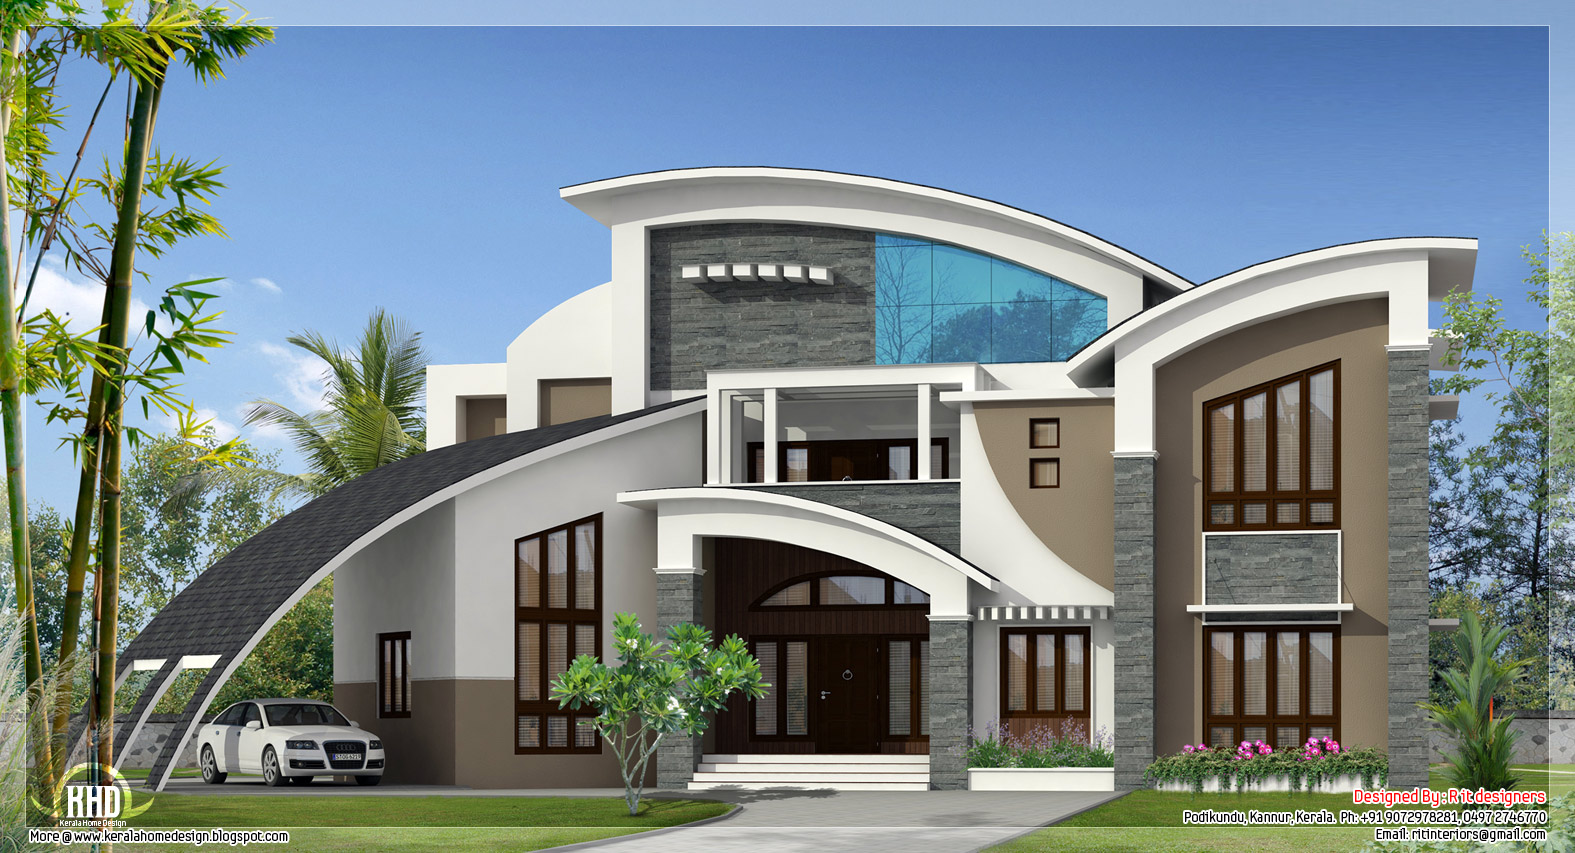 Excellent Dream House Kerala Style Cbrp Dream Home Designs Ideas Home Largest Home Design Picture Inspirations Pitcheantrous